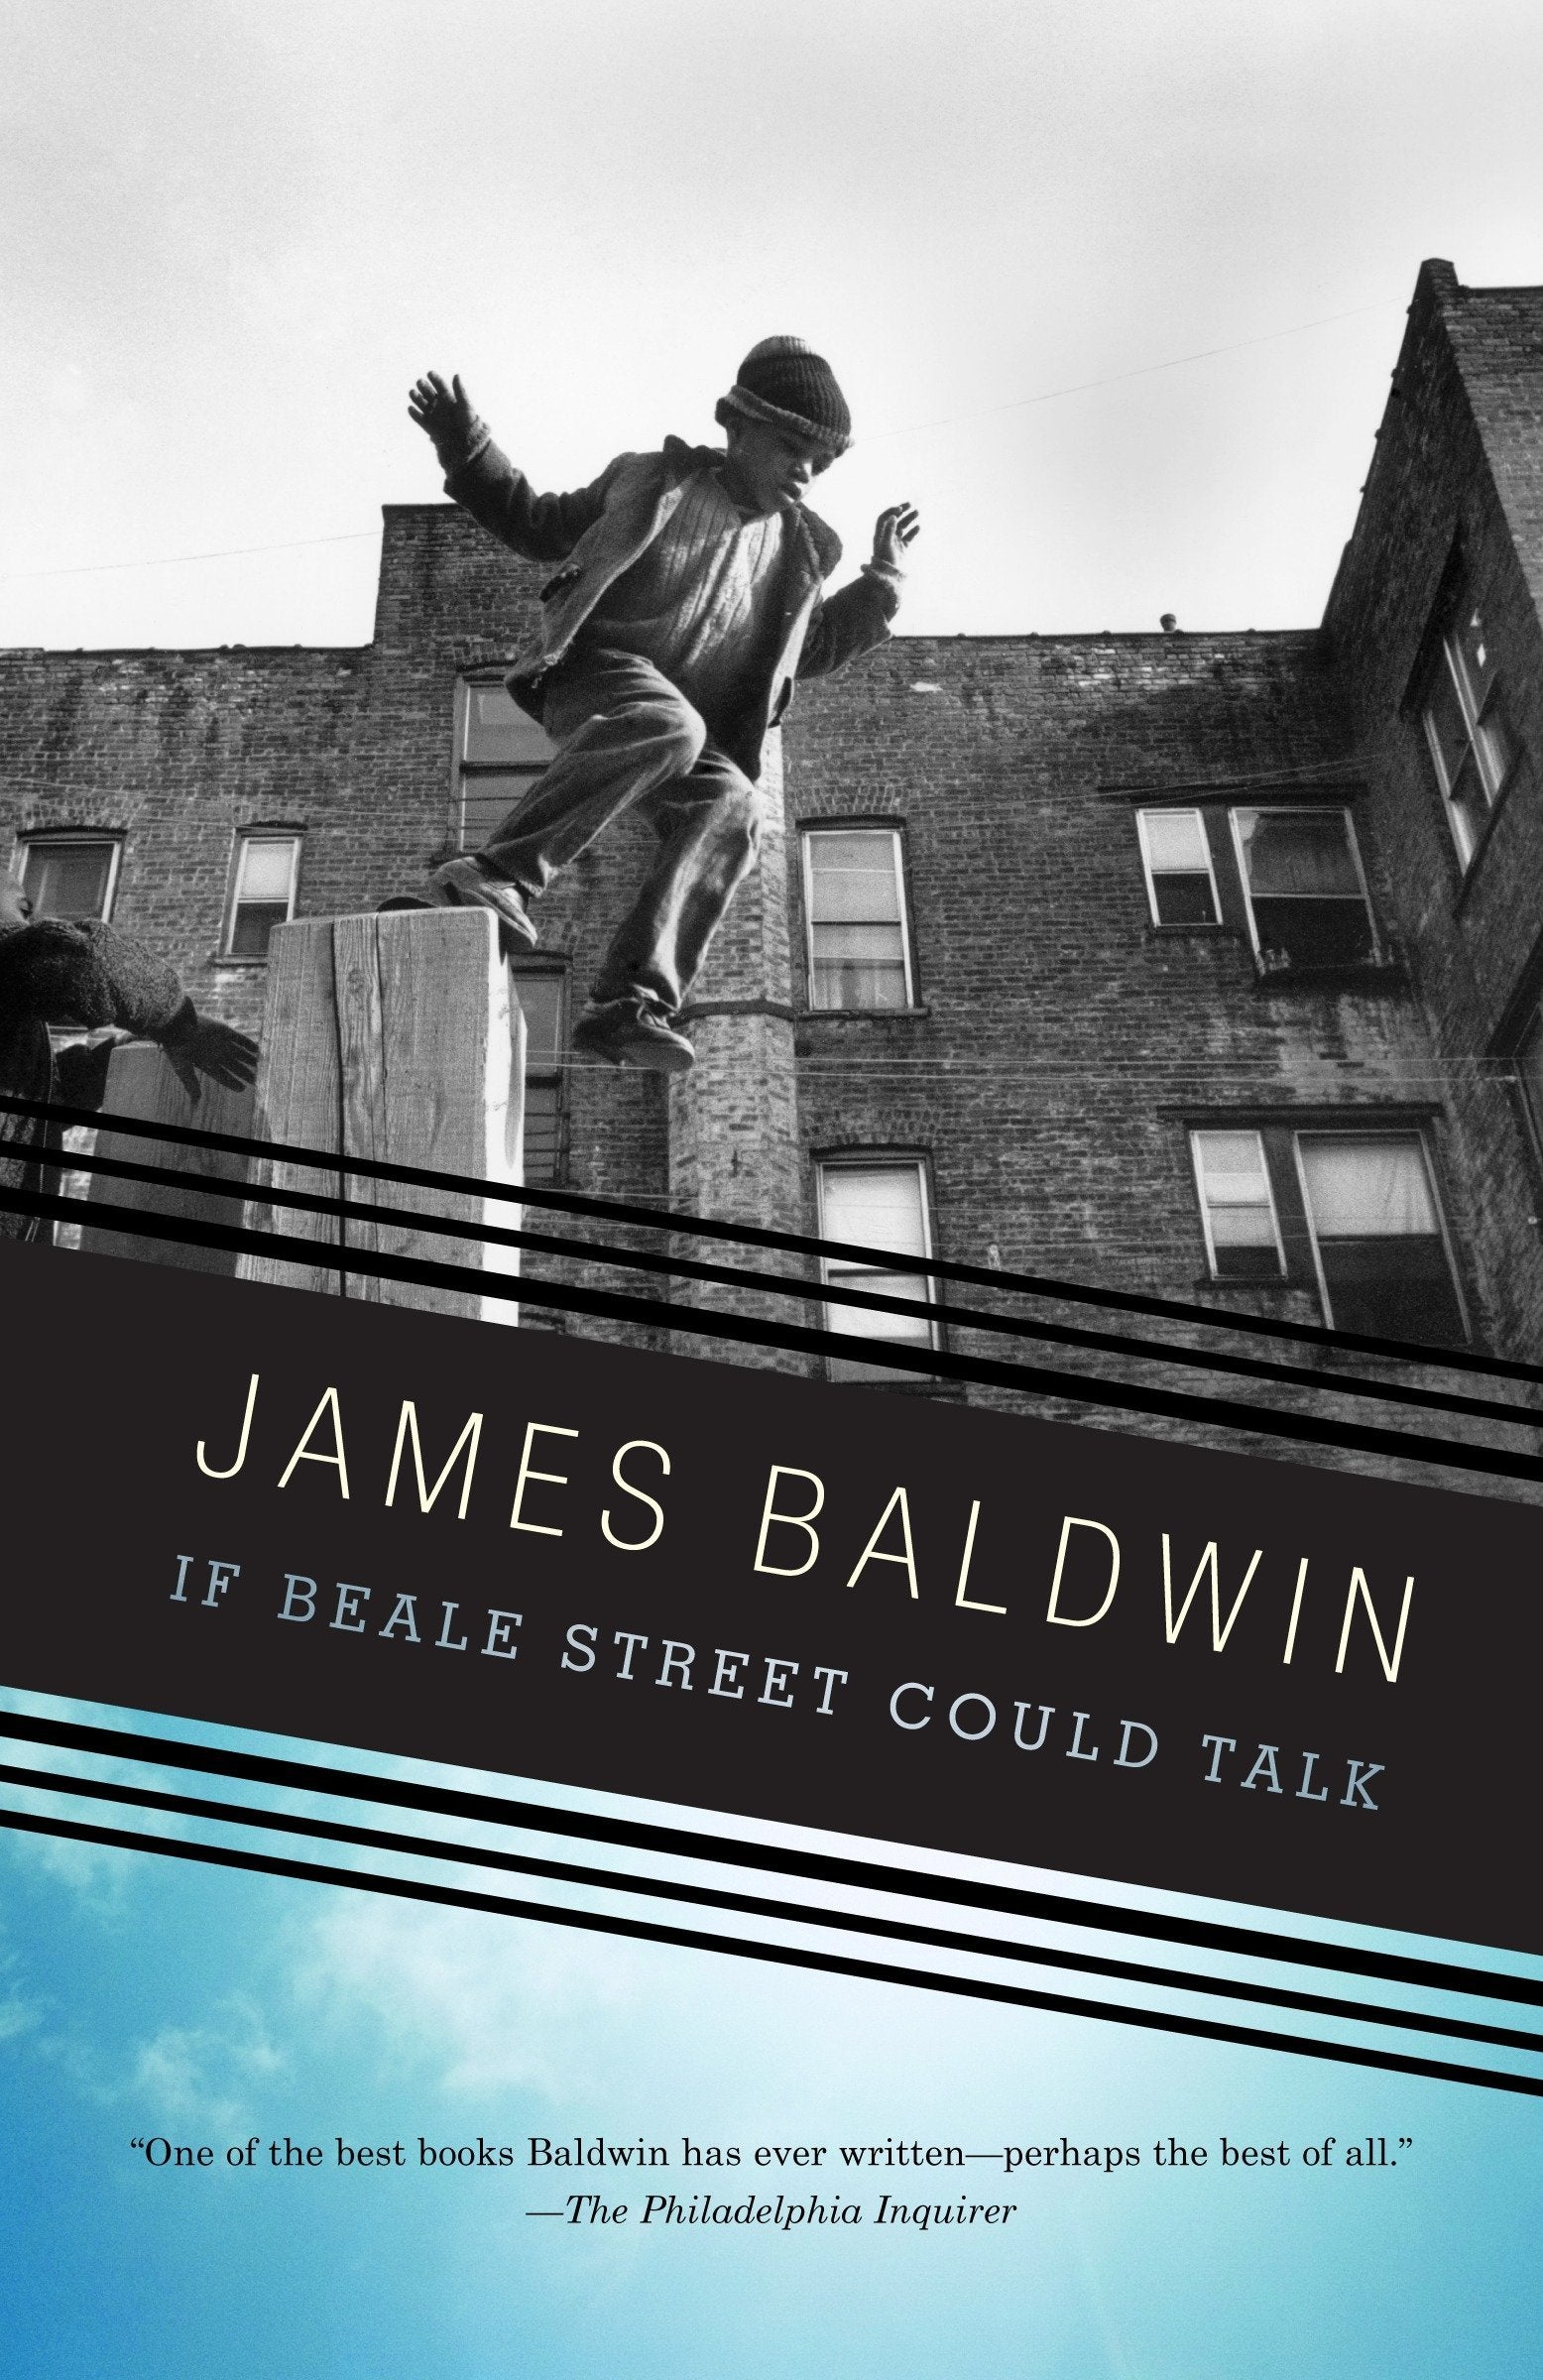 Book cover for If Beale Street Could Talk